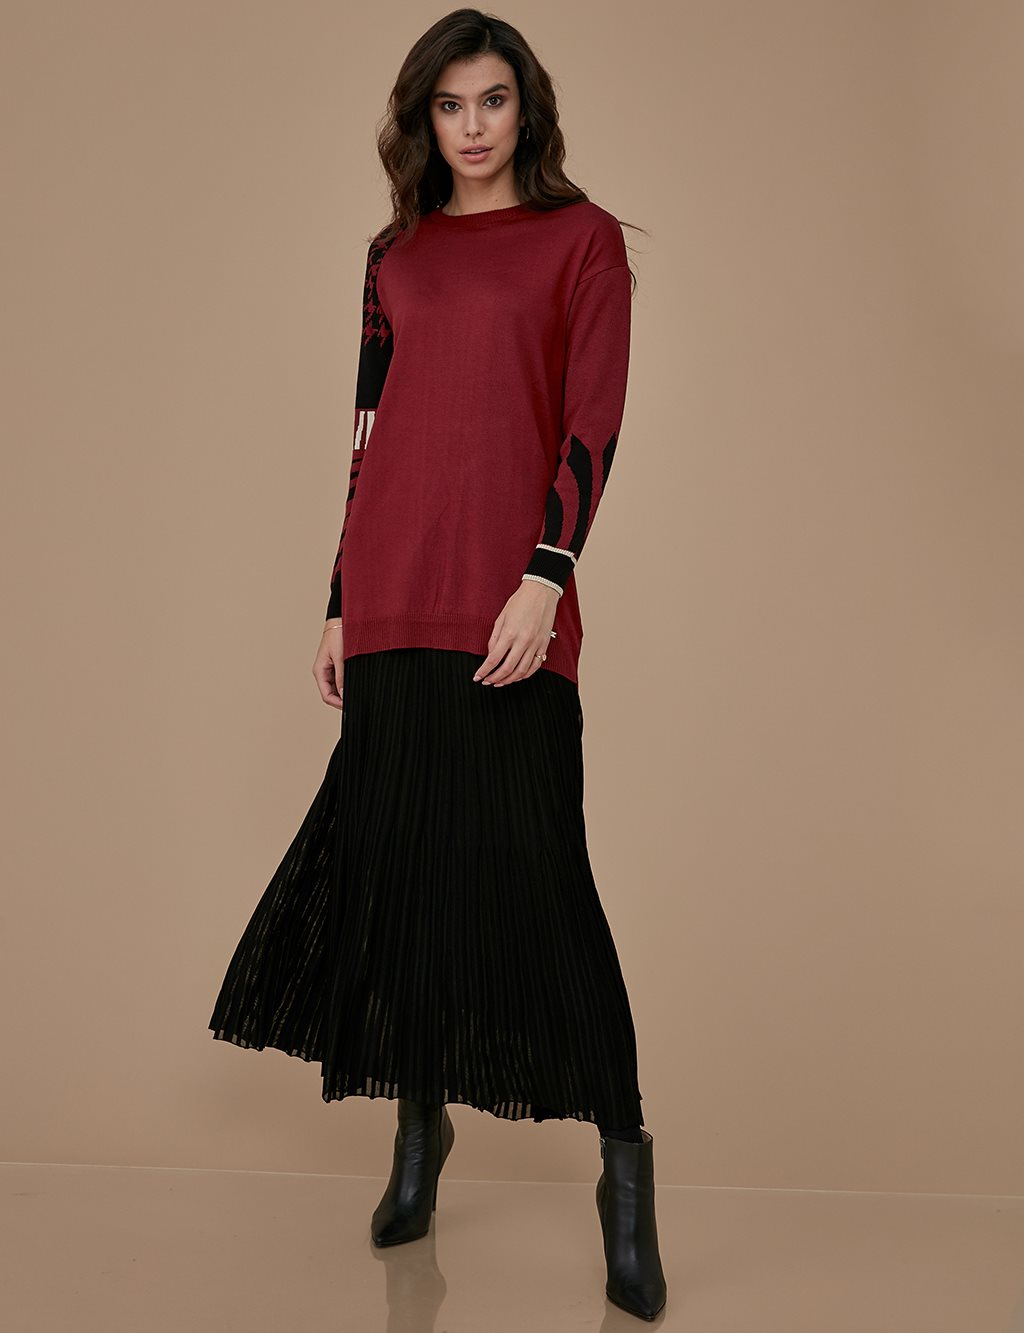 Knitwear Skirt A9 TRK39 Black